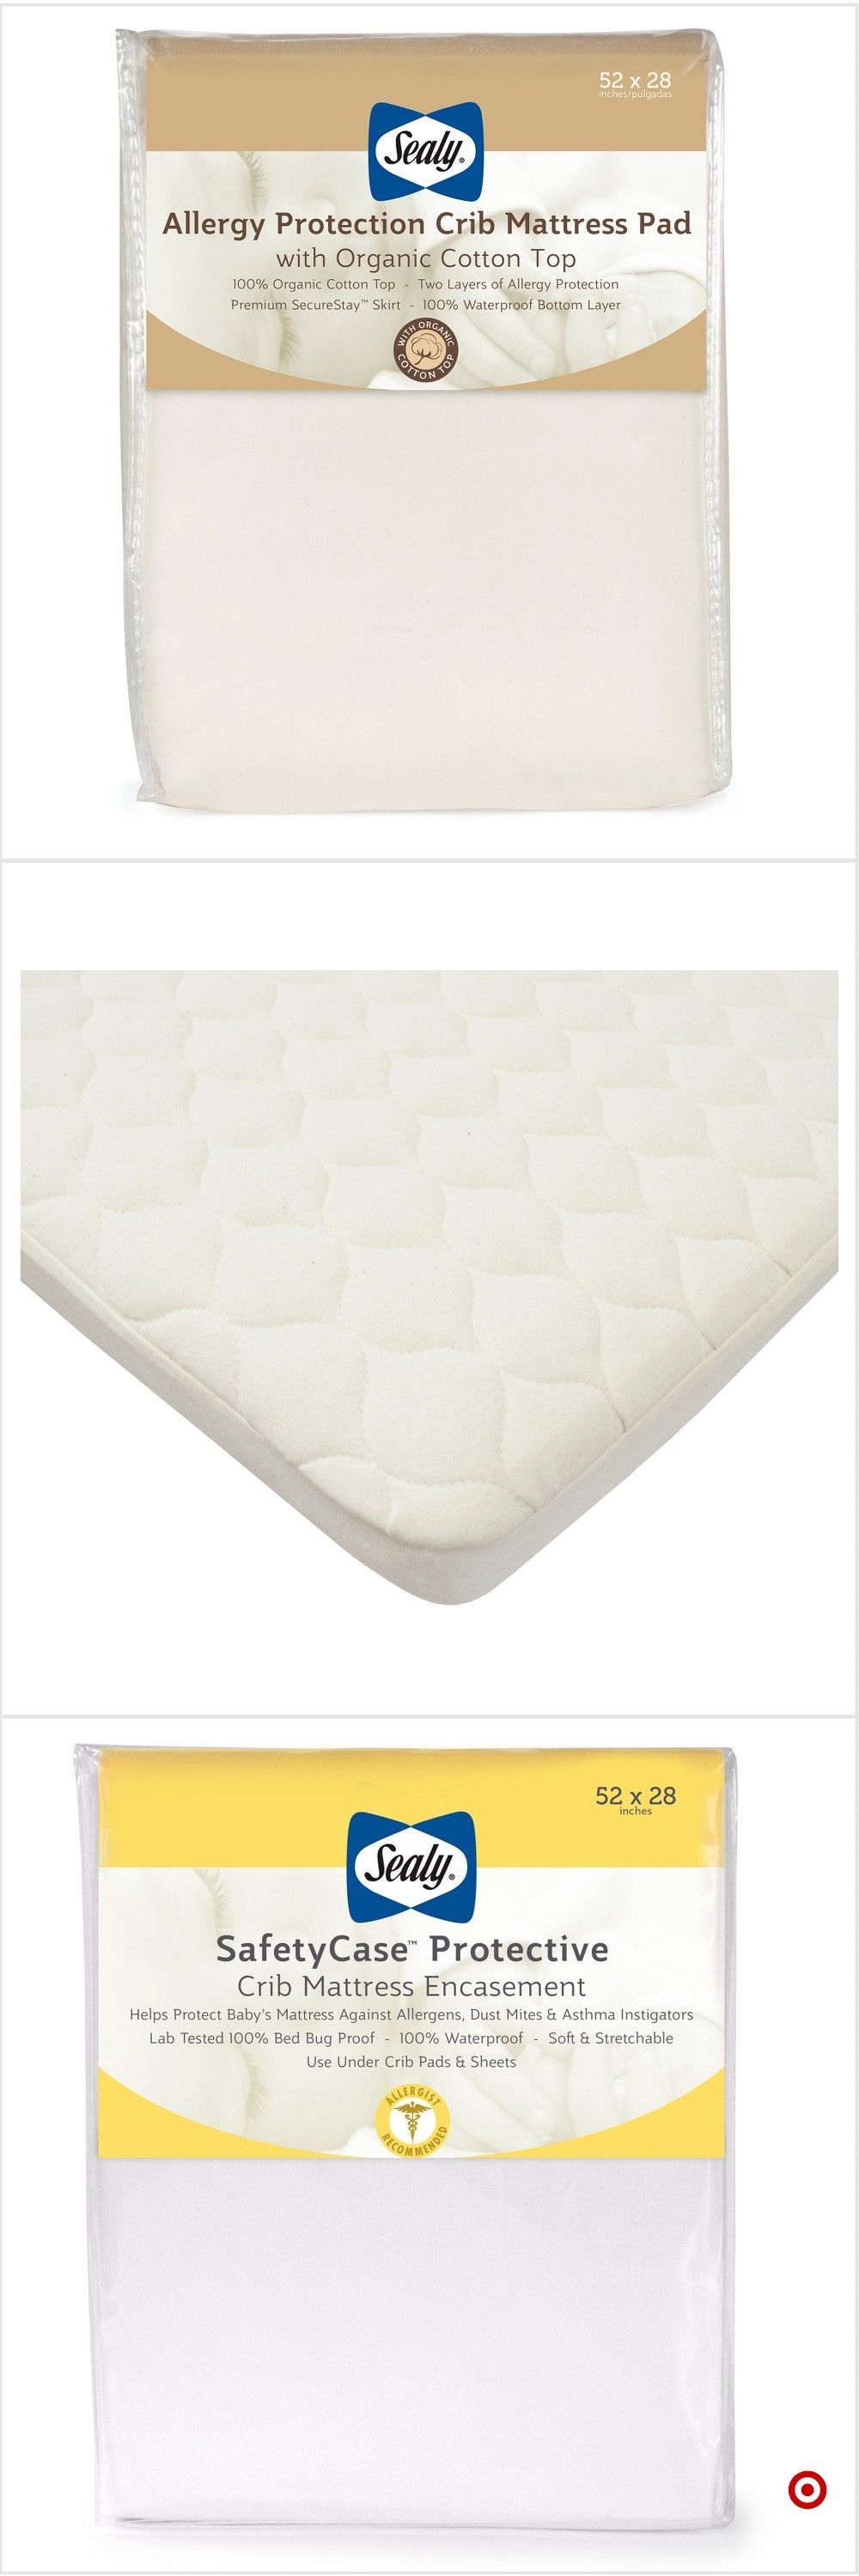 shop target for baby mattress covers you will love at great low